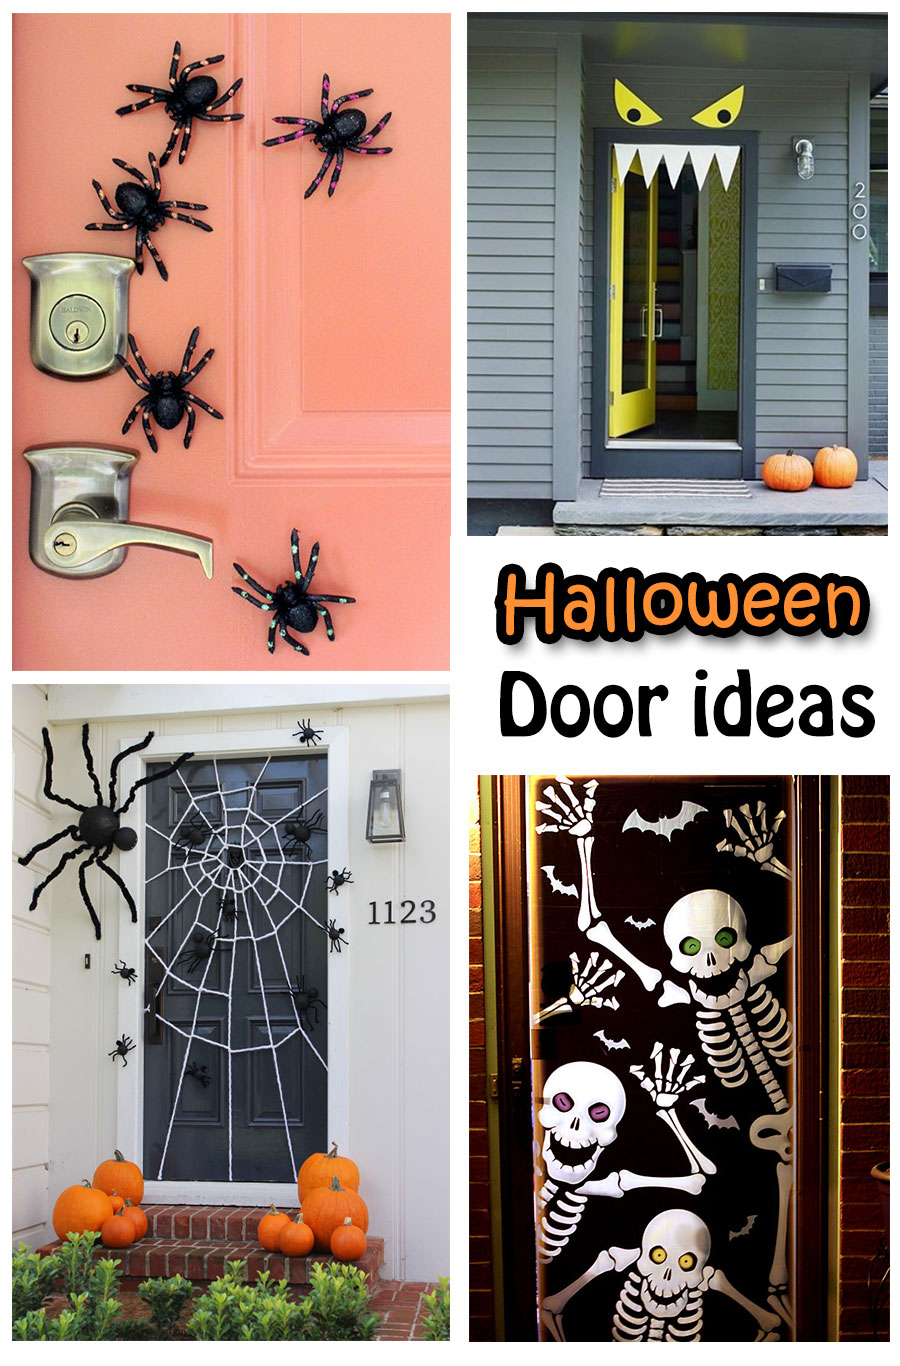 halloween is near these spooky halloween door decorations ideas will help you out to decor